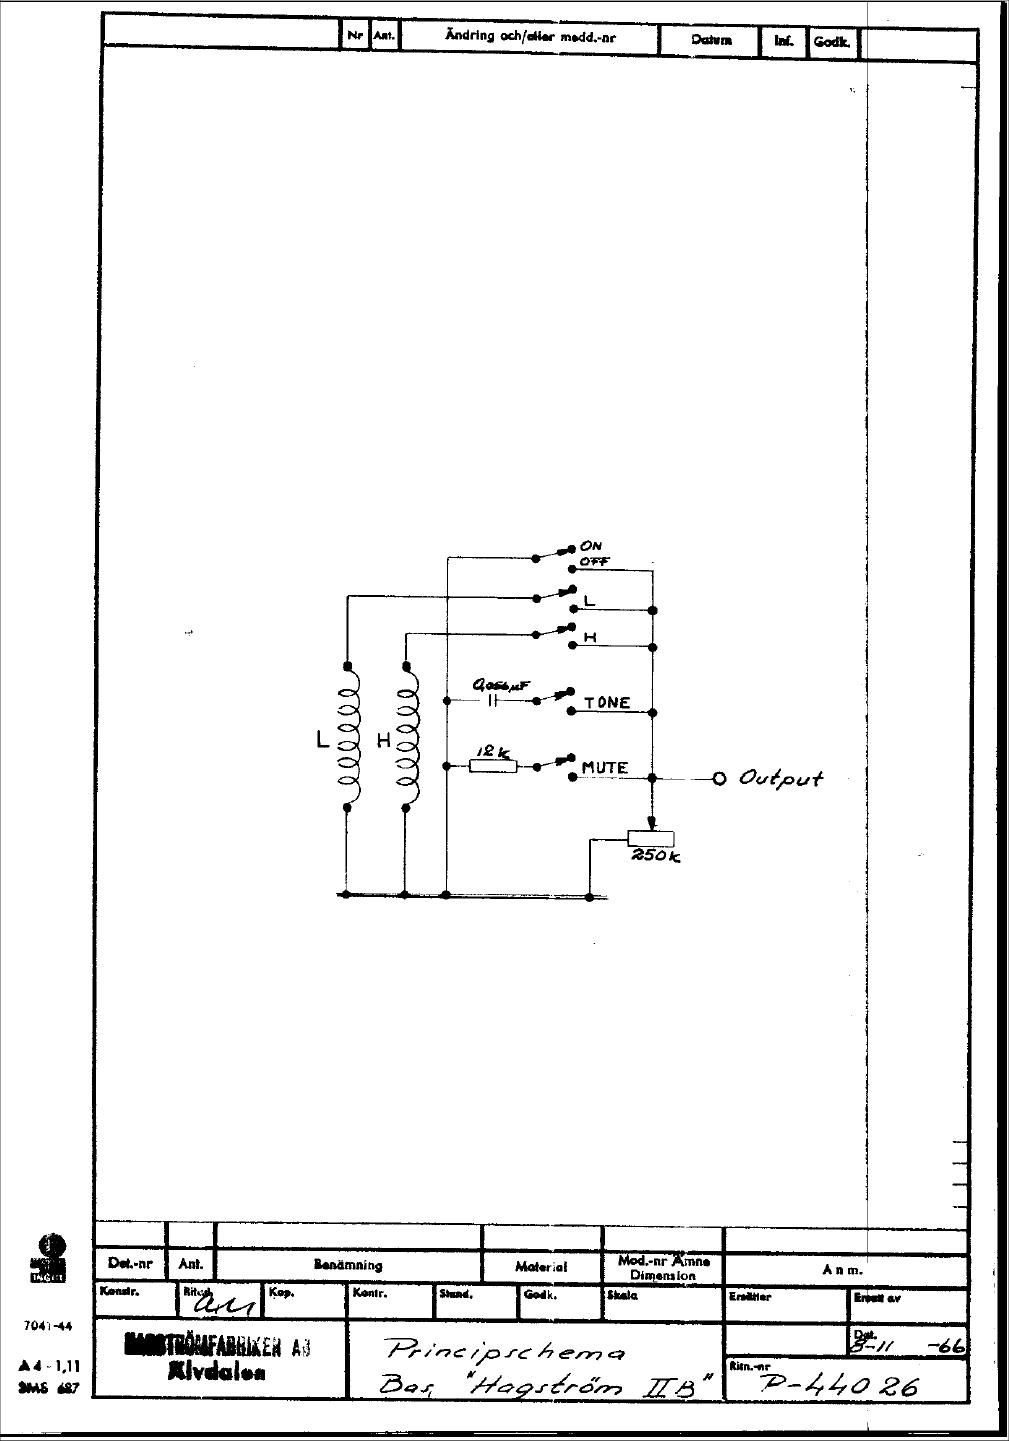 HagstromIIB 1966 hagstr�m schematics viking 0322-06 wiring diagram at eliteediting.co